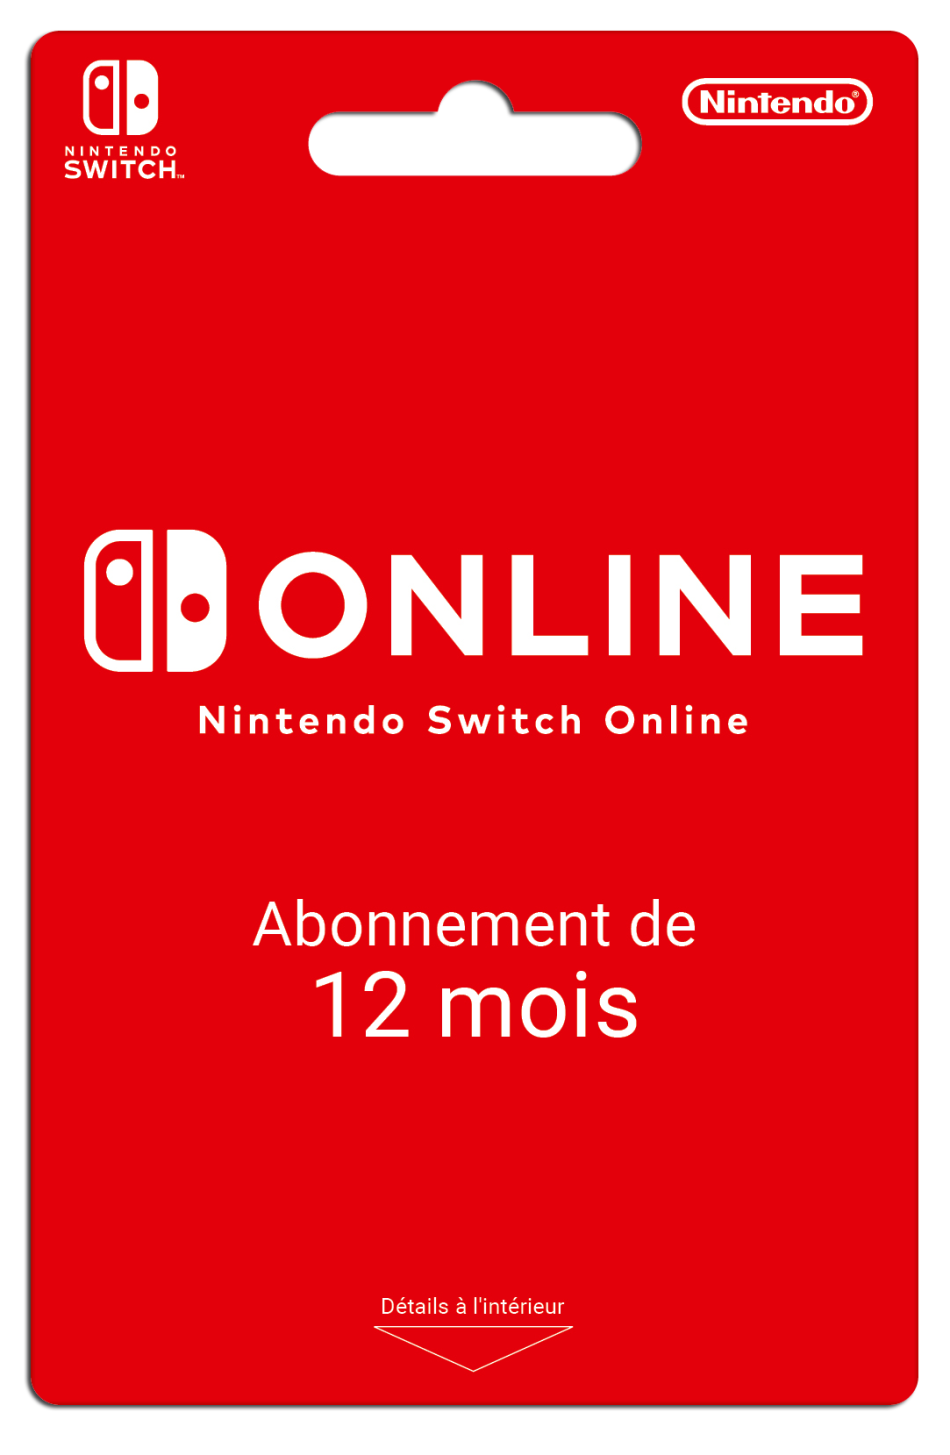 CI_NSwitch_Online_Pricing_Join_Membership_Card_FR.png